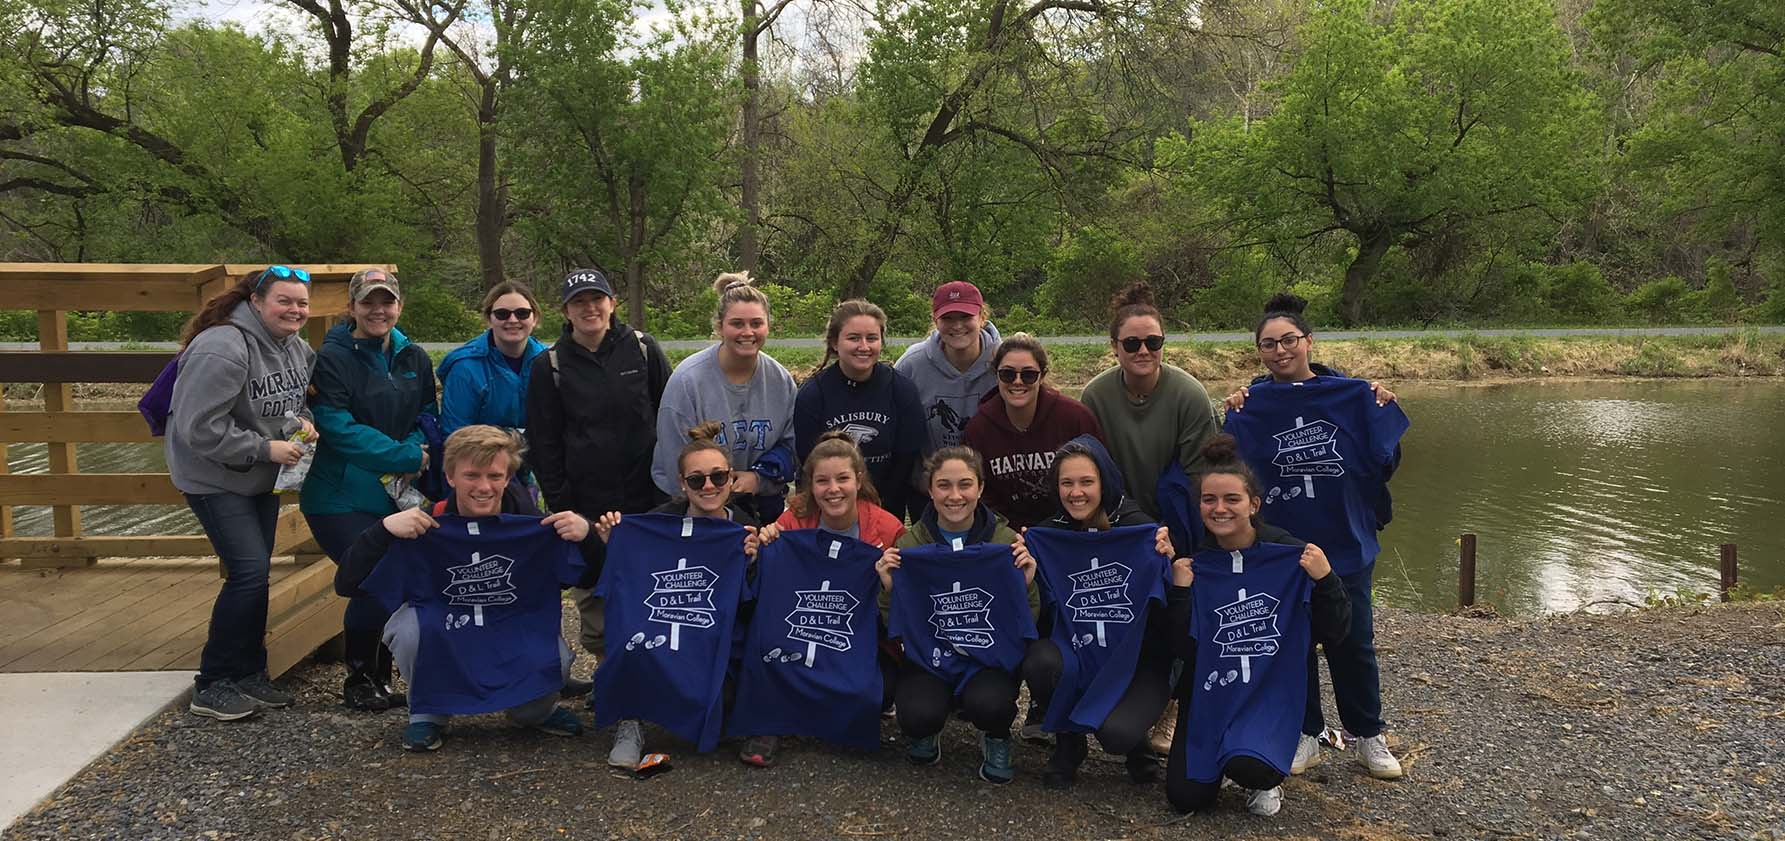 Moravian College student volunteers gather for a group photo on the D&L trail.